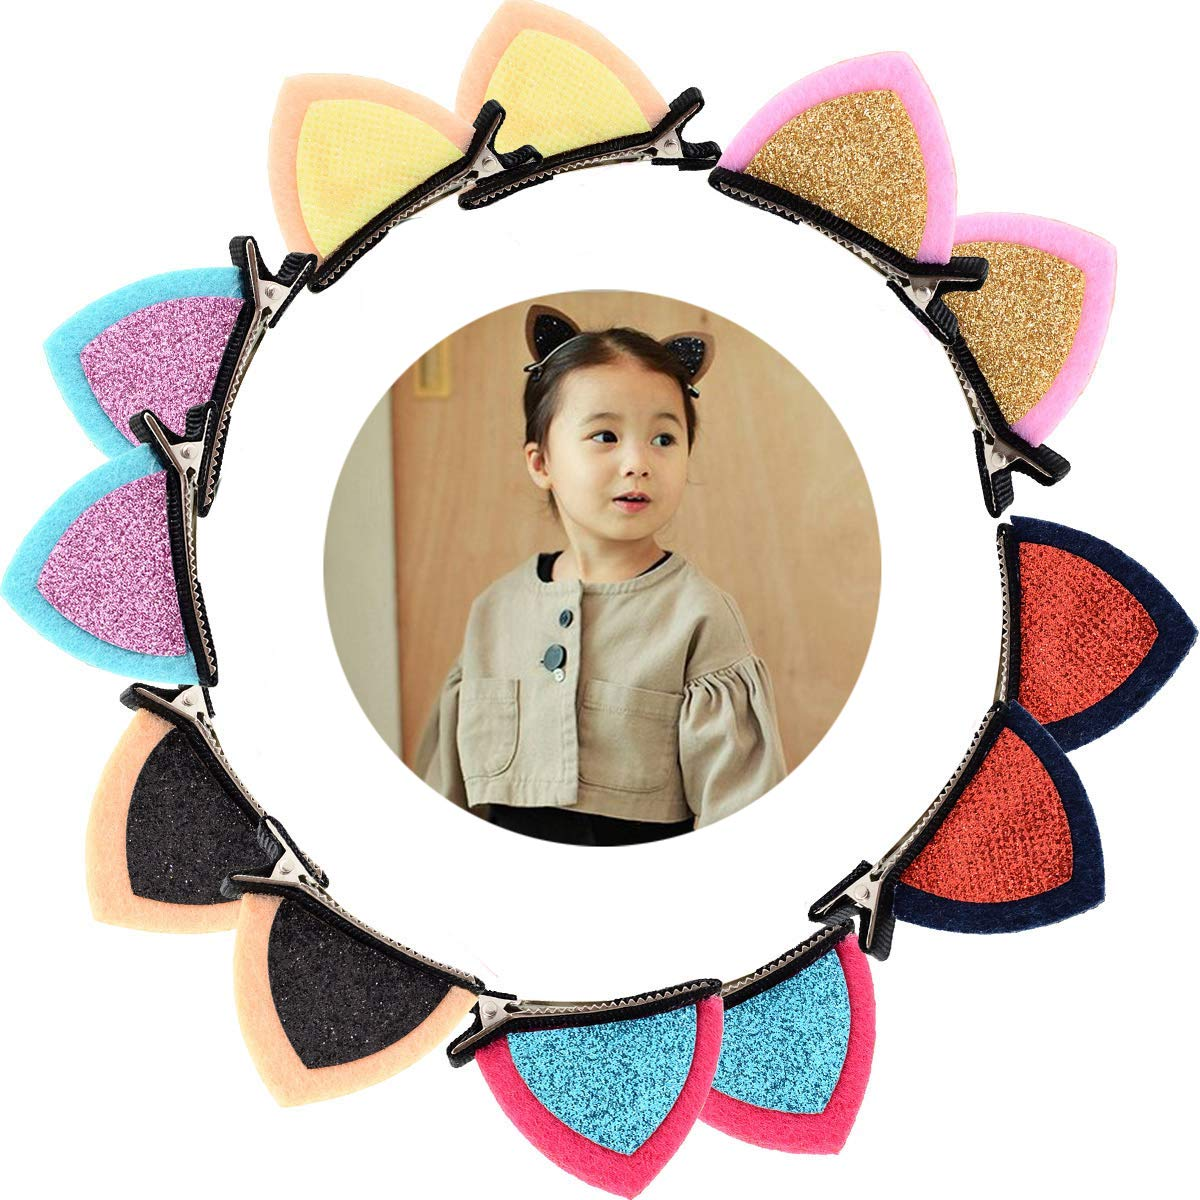 6Pair Cat Ears Hair Accessories Hair Clips For Baby Girls Children/'s Barrettes